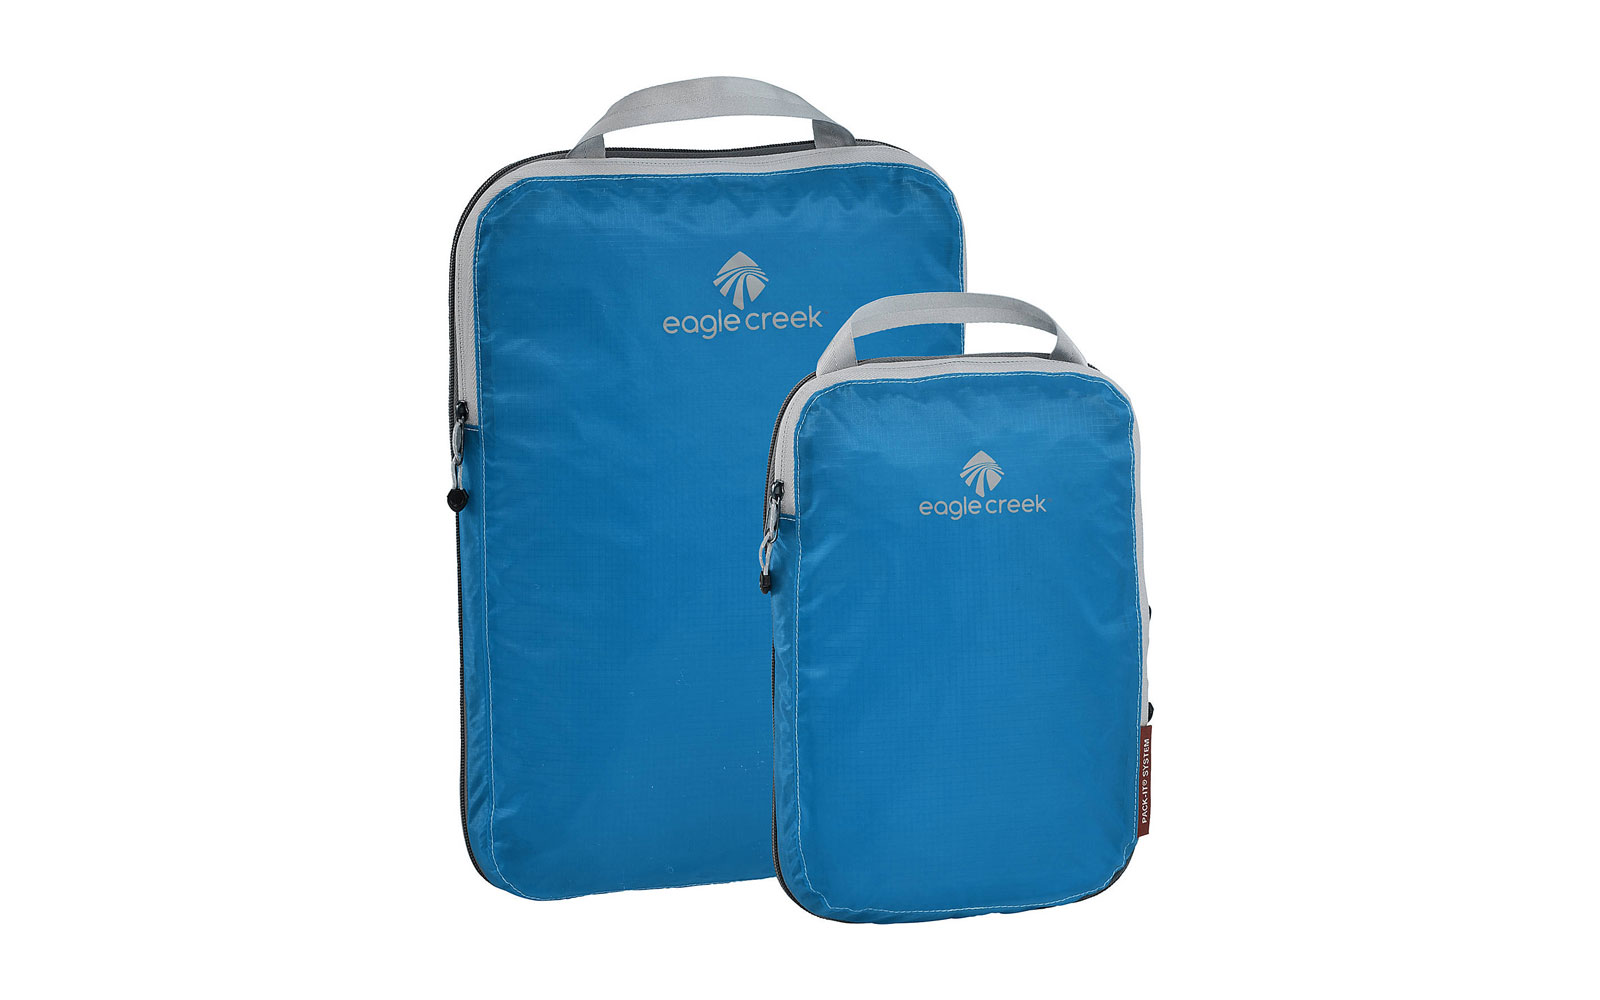 Blue compression packing cubes